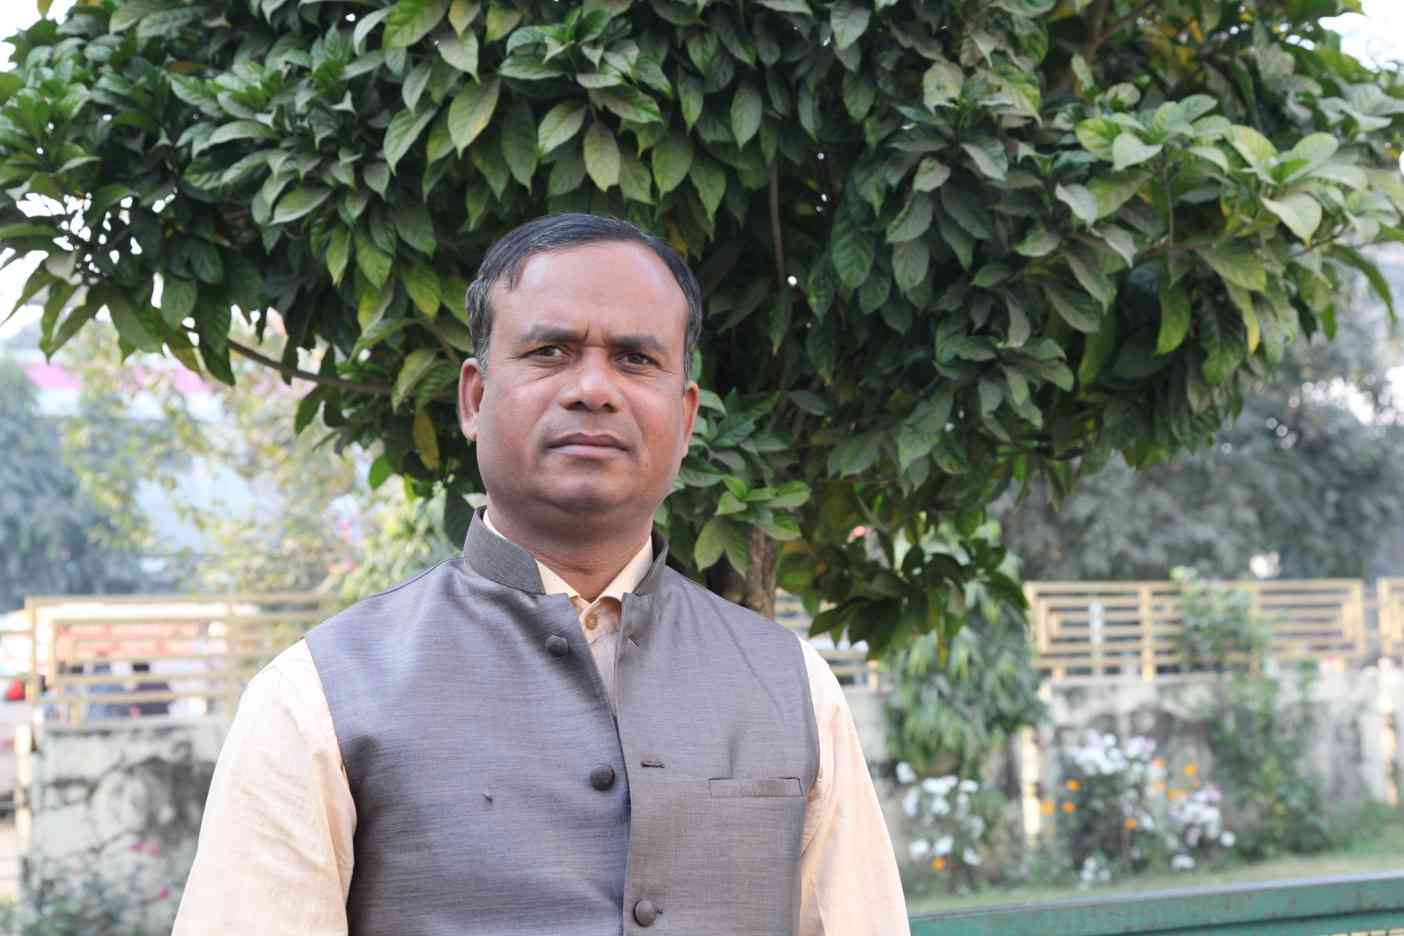 Mohammad Shakeel has been teaching at a madrassa in Bareilly since 2003.